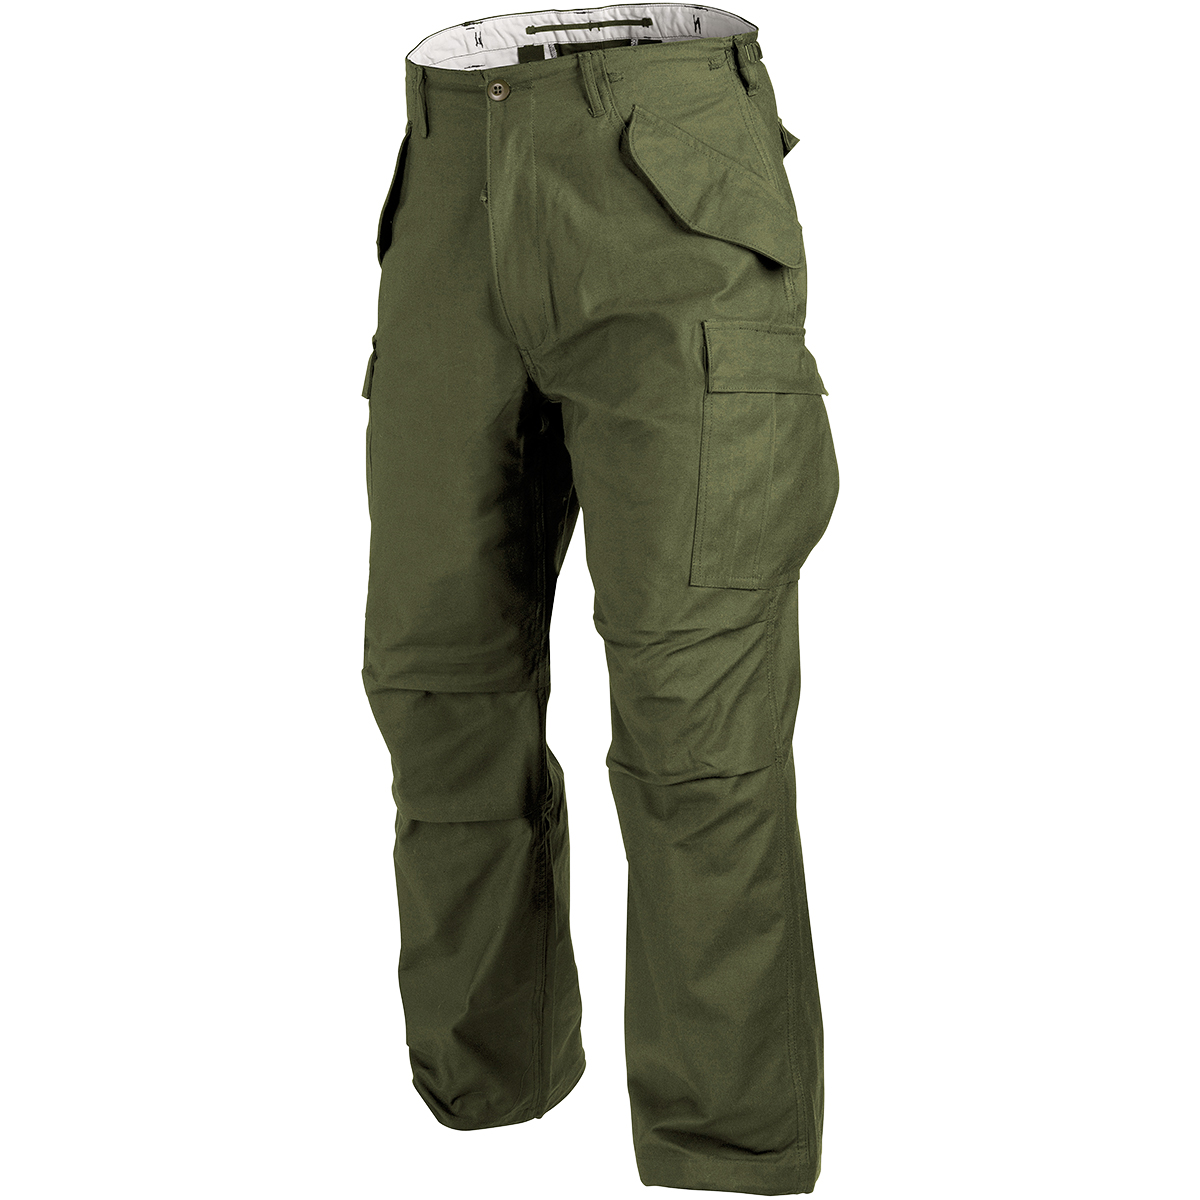 Details about Genuine Us M65 Helikon Combat Cargo Trousers Army Us Pants  Nyco Helikon Olive b2bd7c712f3